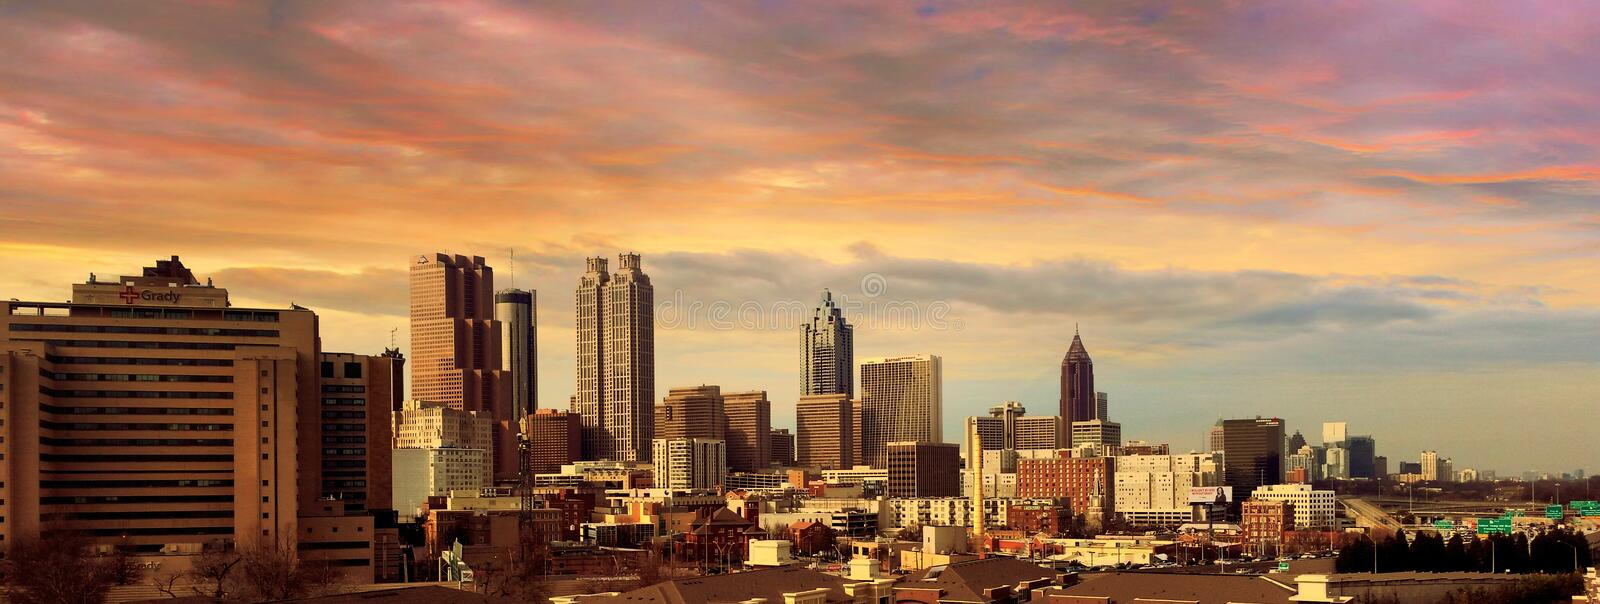 Atlanta city skyline stock image